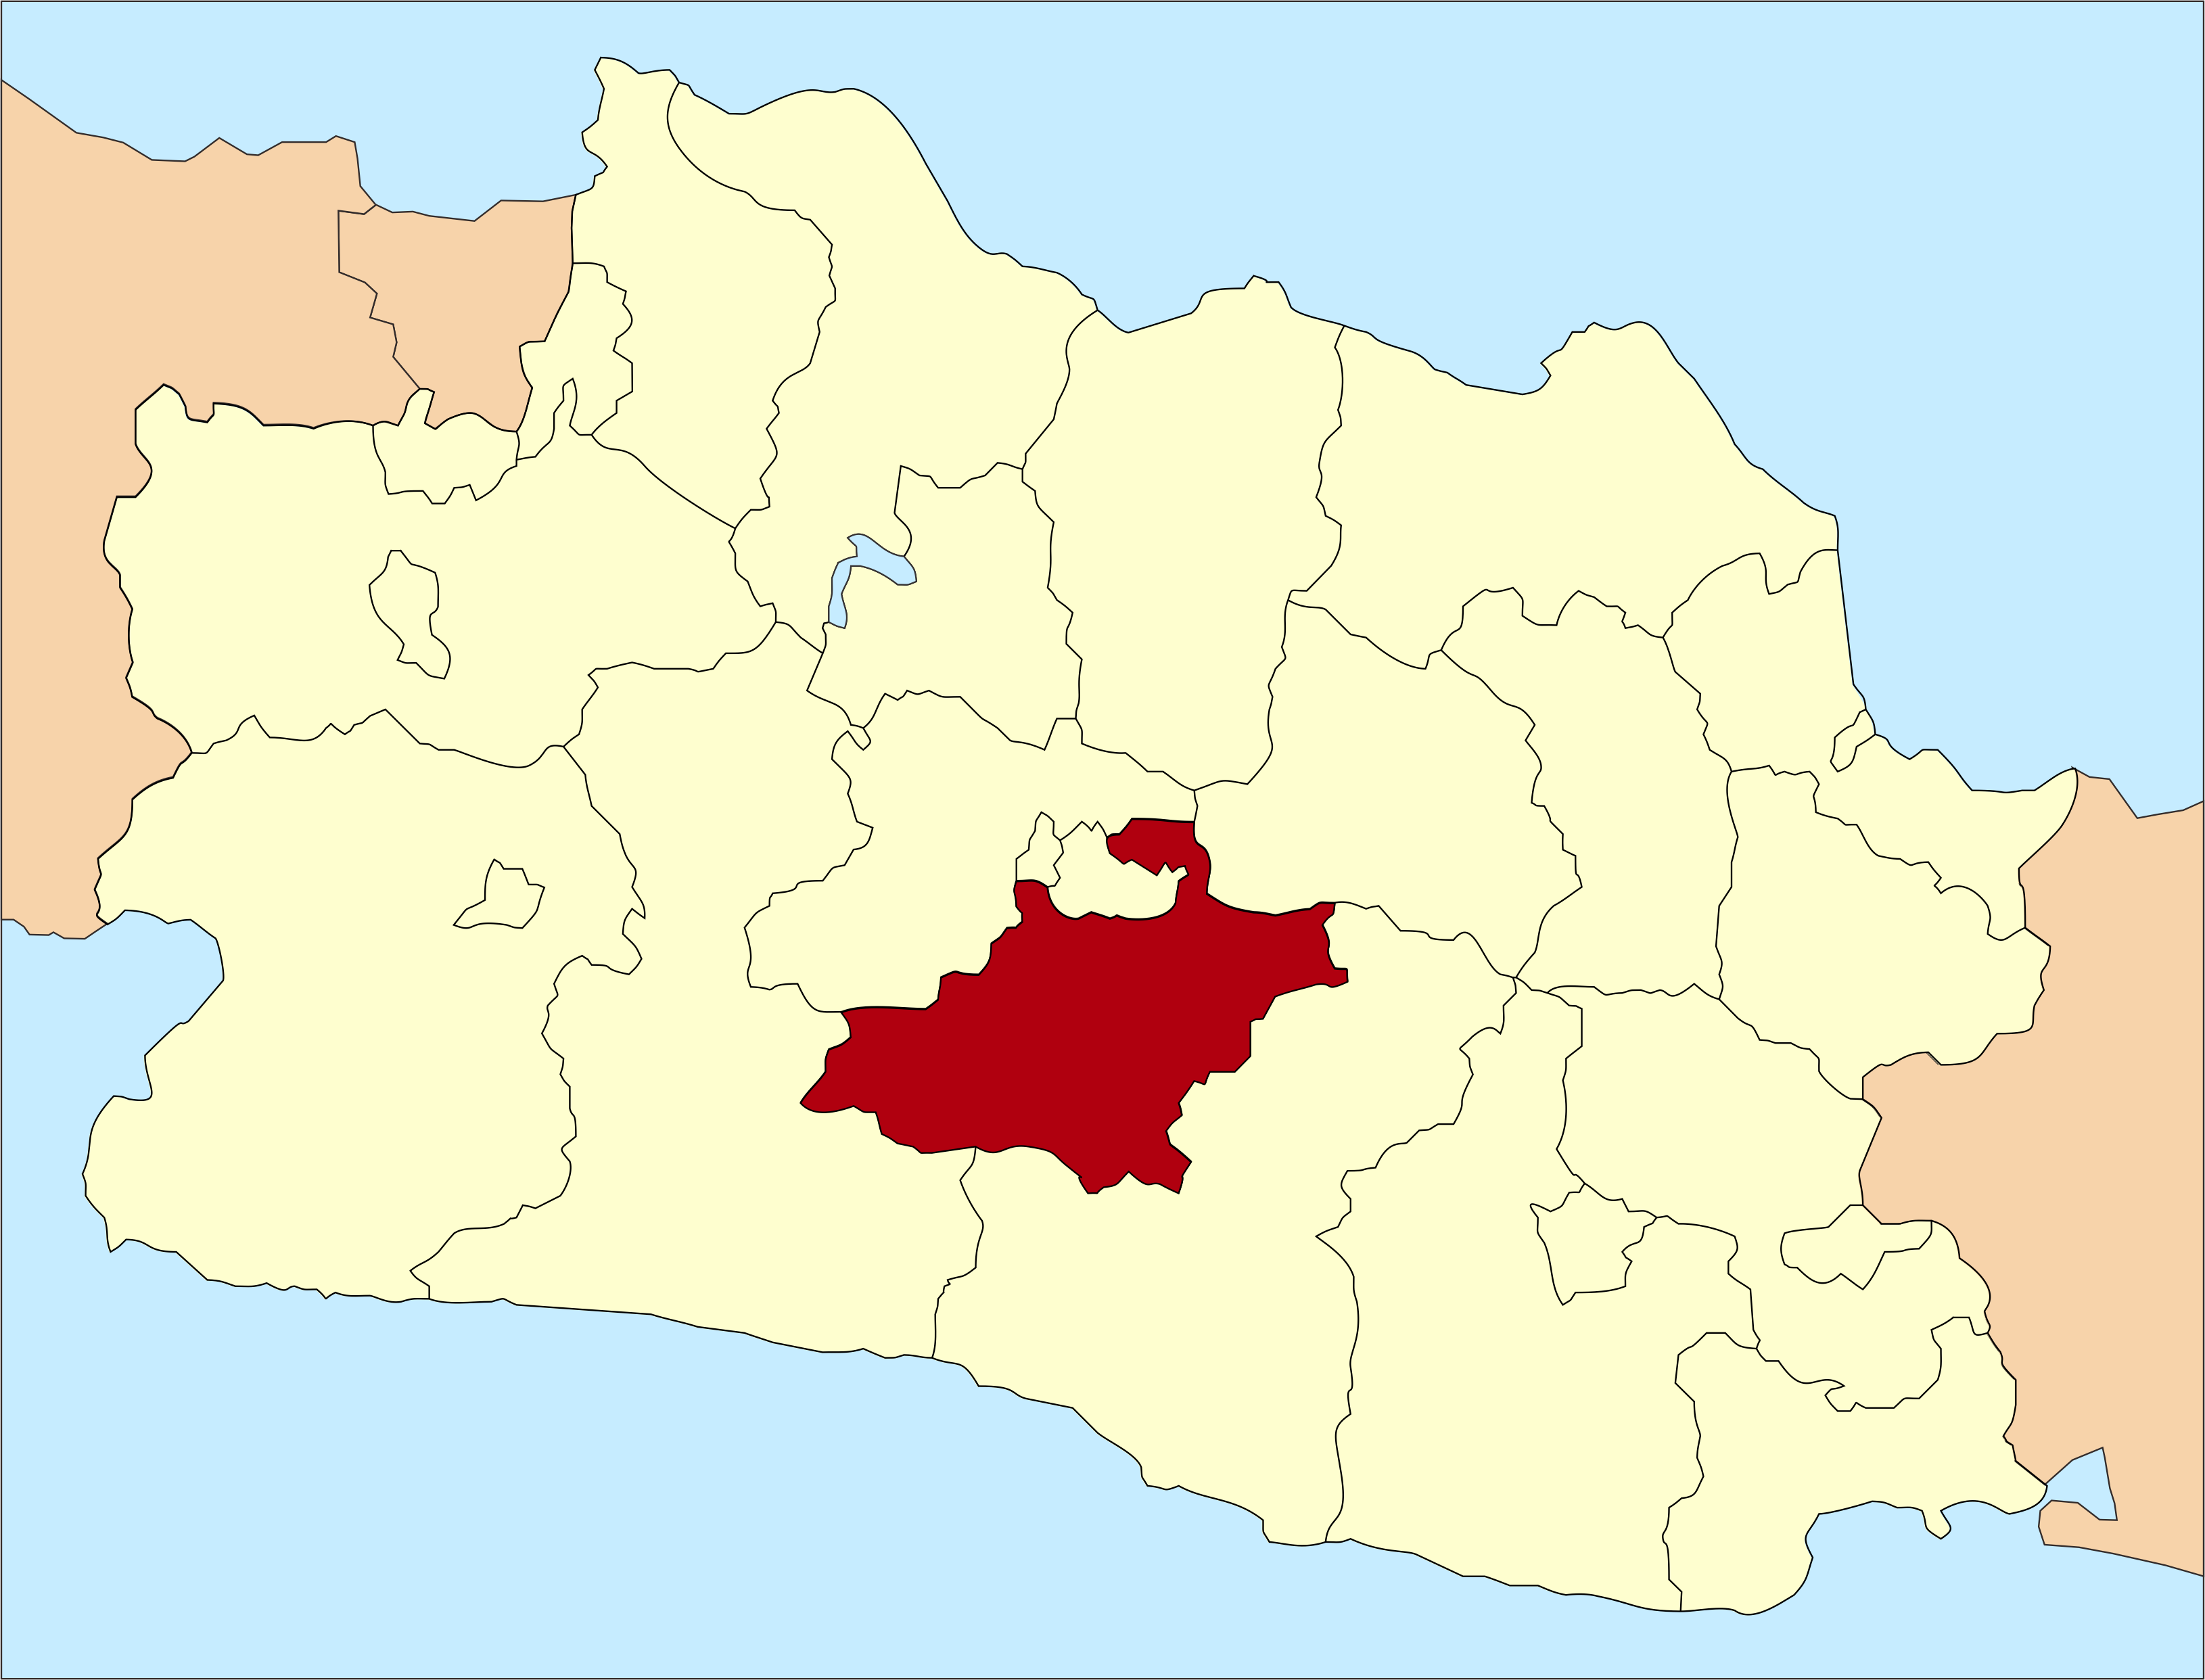 Bandung Regency next to Bandung City in West Java